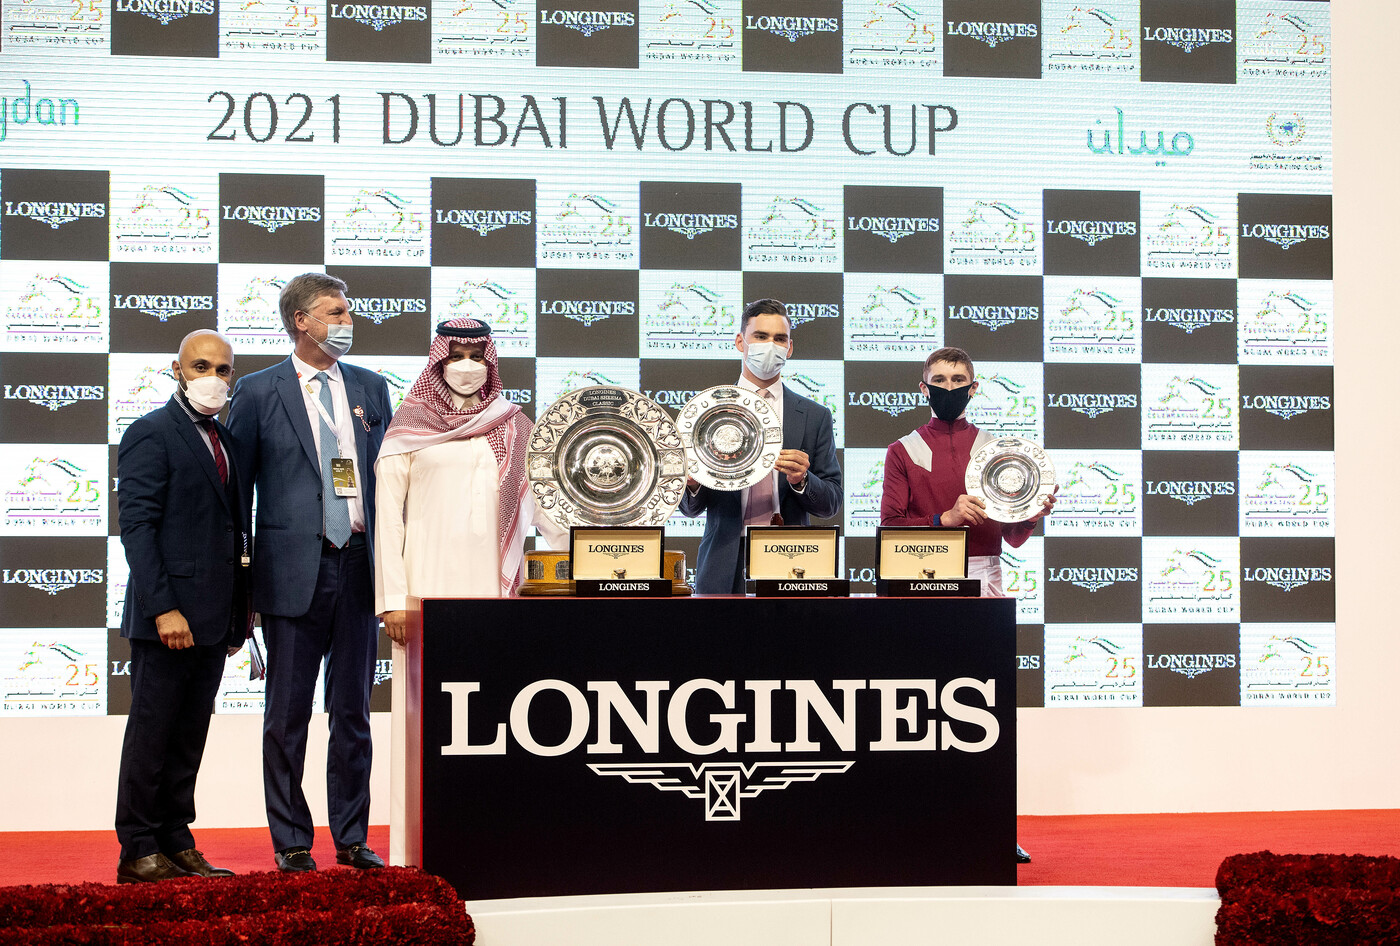 Longines Flat Racing Event: Longines times the victory of Mystic Guide in the 25th Dubai World Cup 1